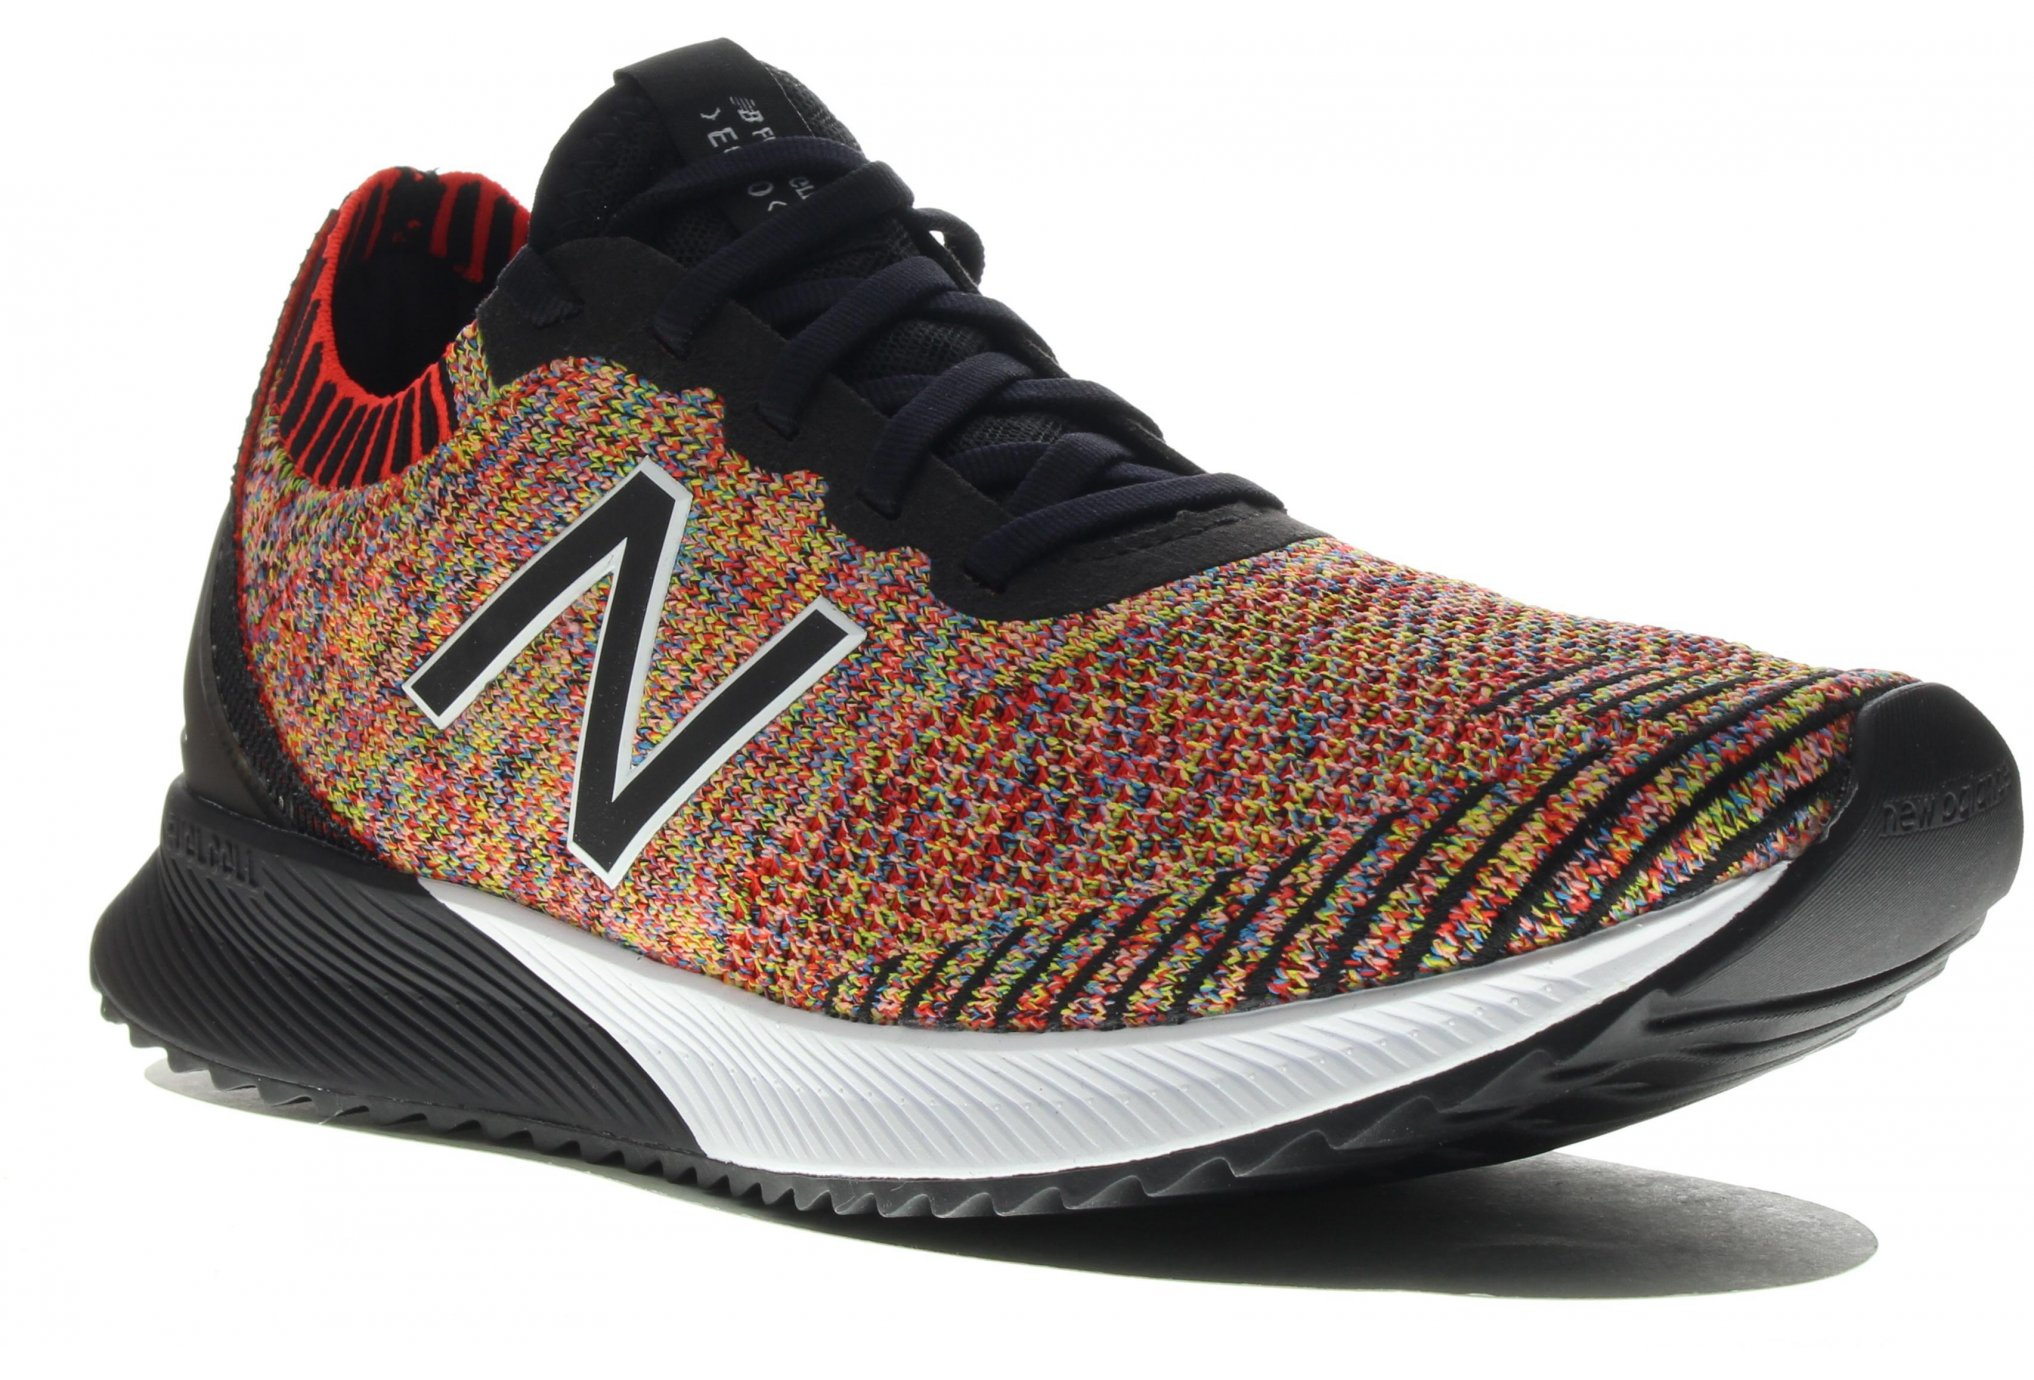 New Balance FuelCell Echo Chaussures homme